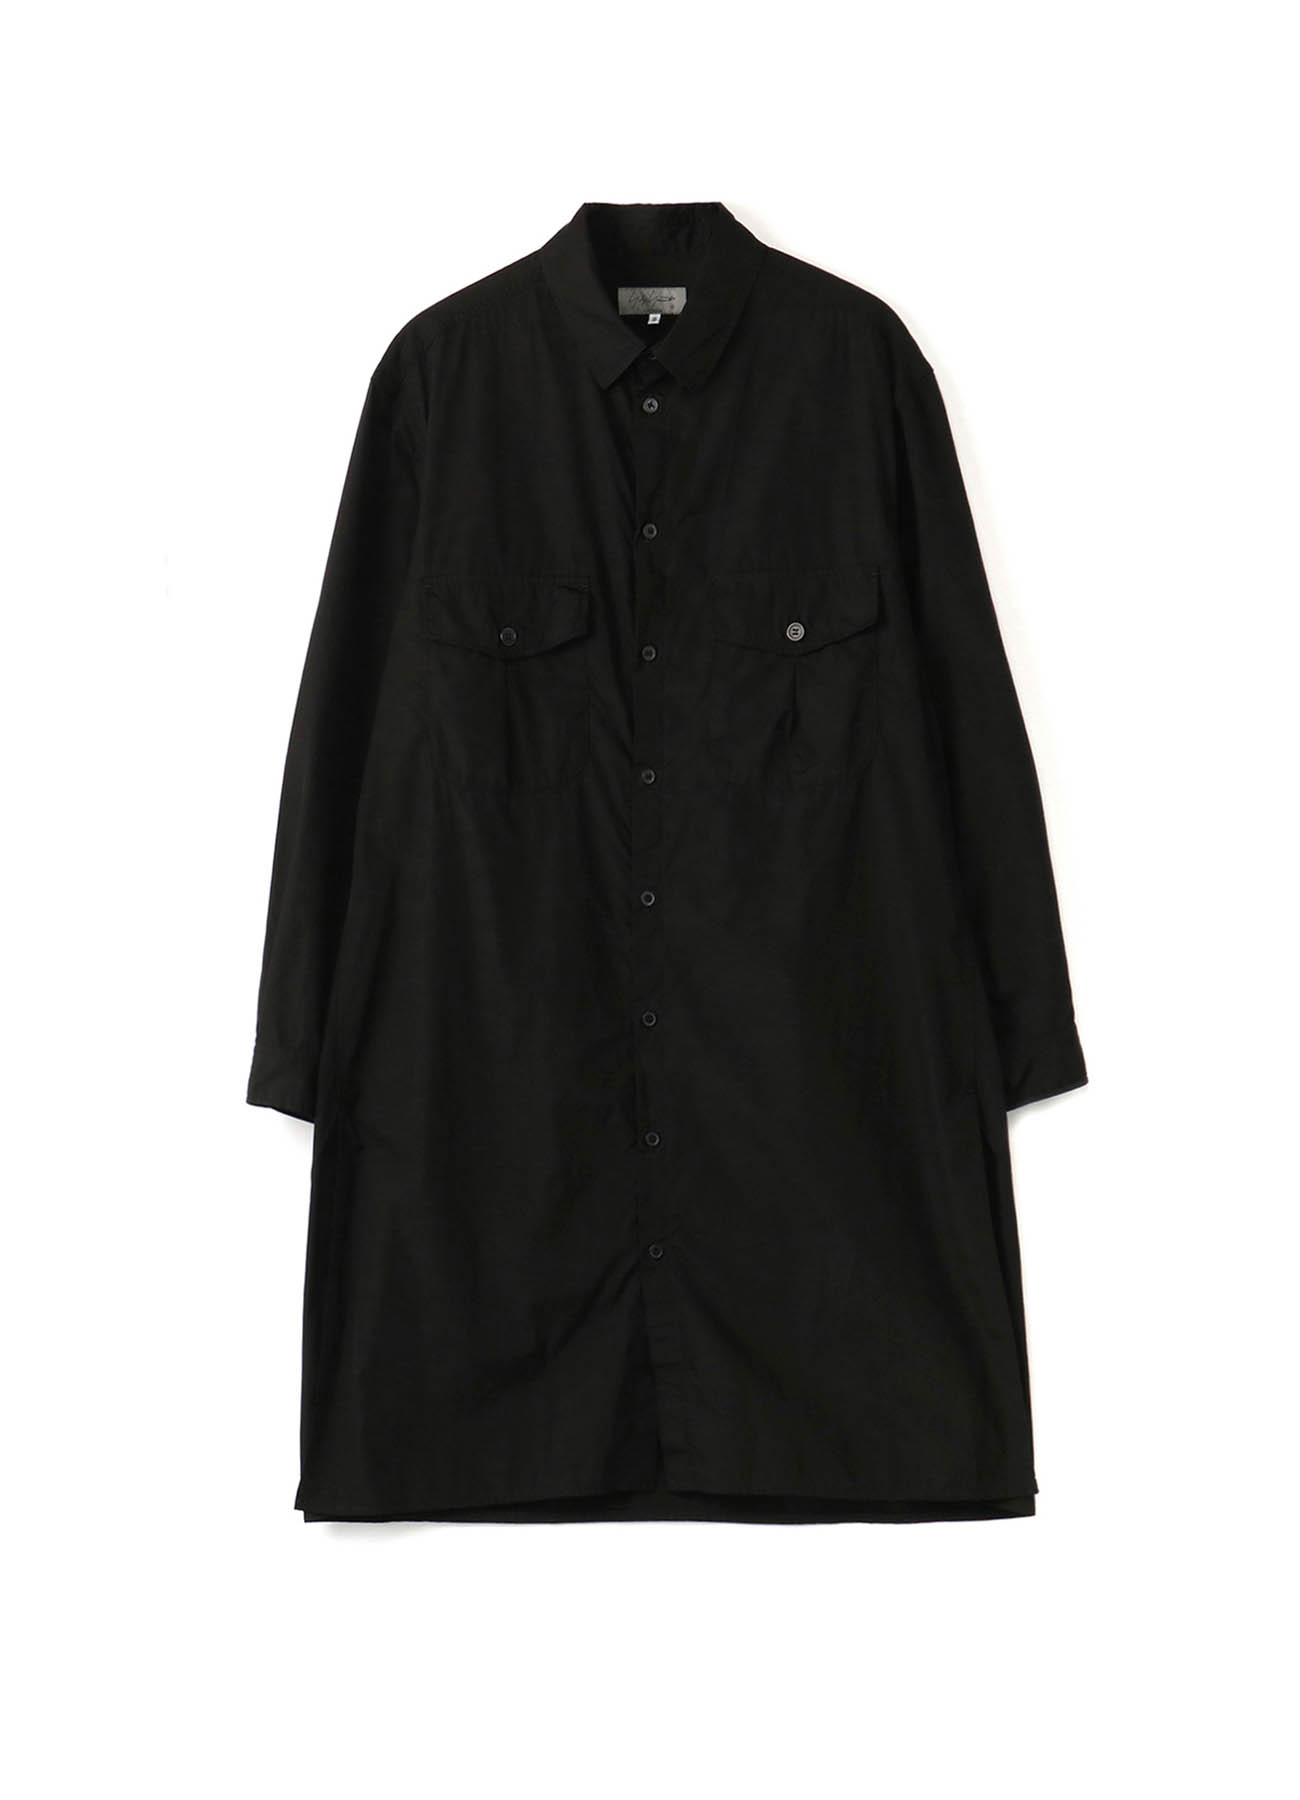 CHAIN STITCH BROAD GATHER SHIRT